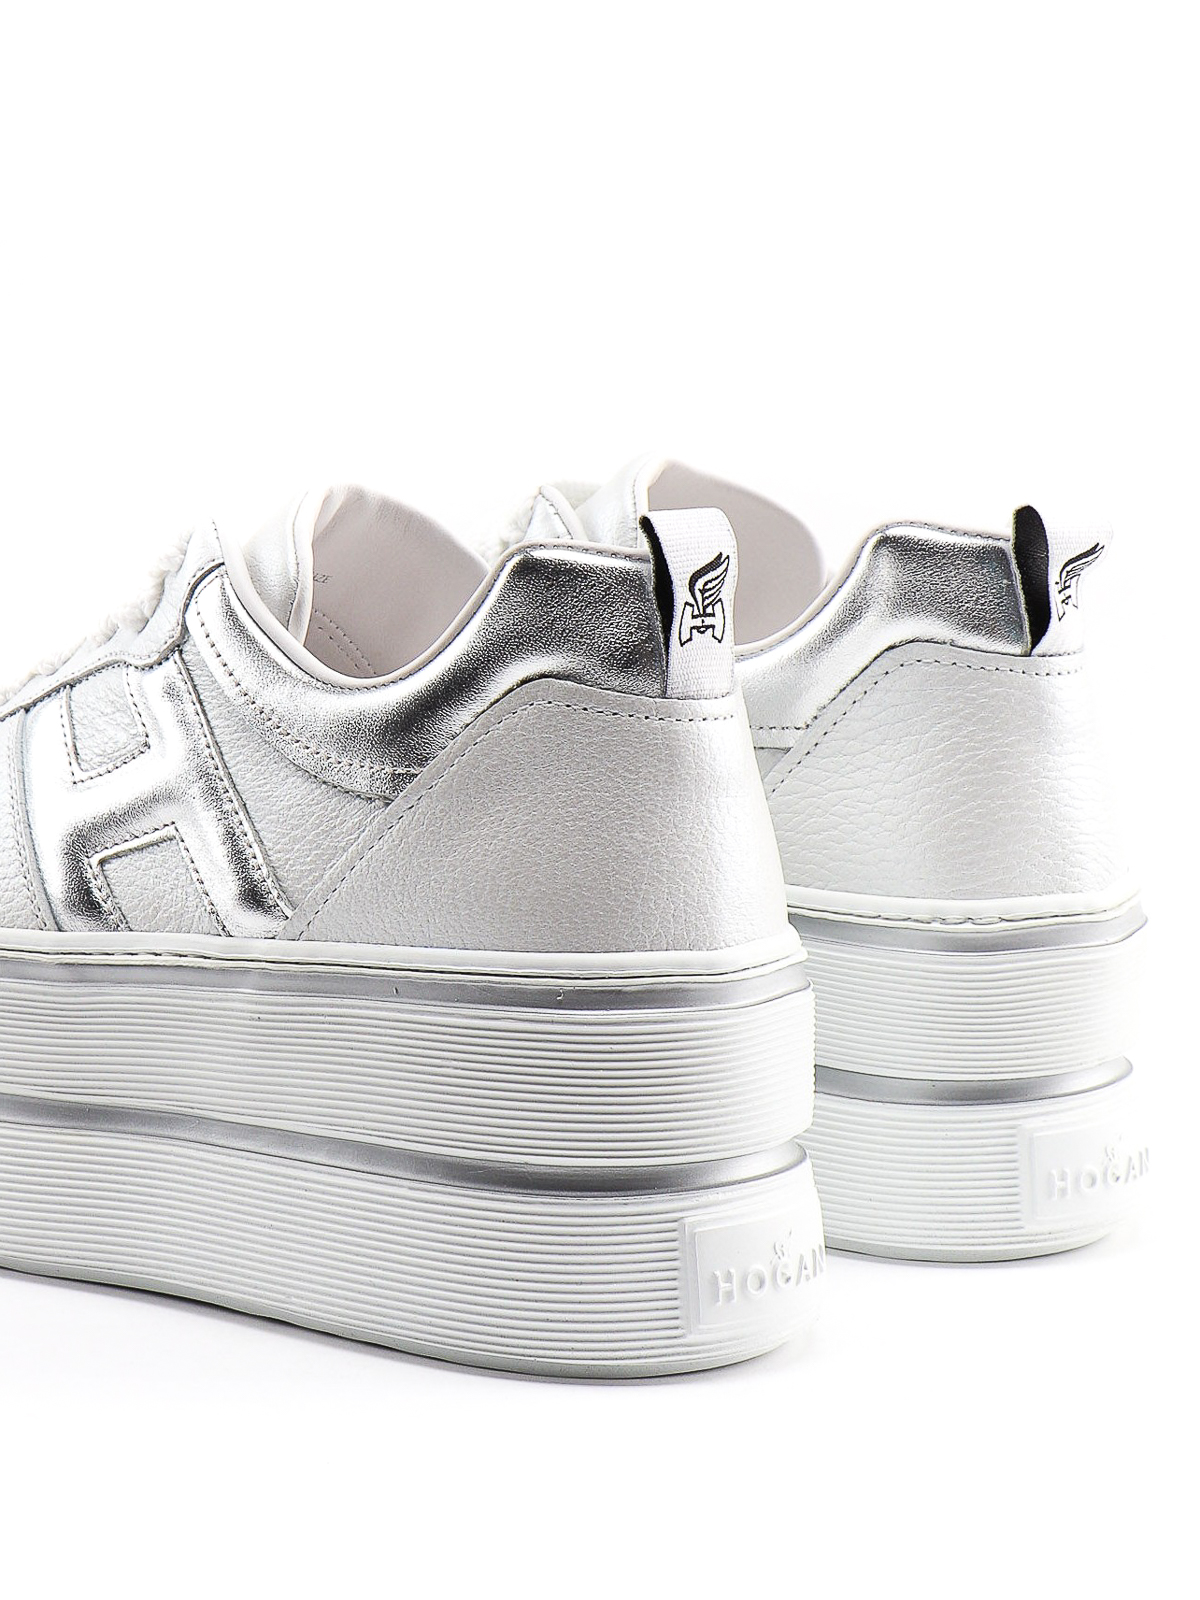 Hogan - H449 white and silver sneakers - trainers